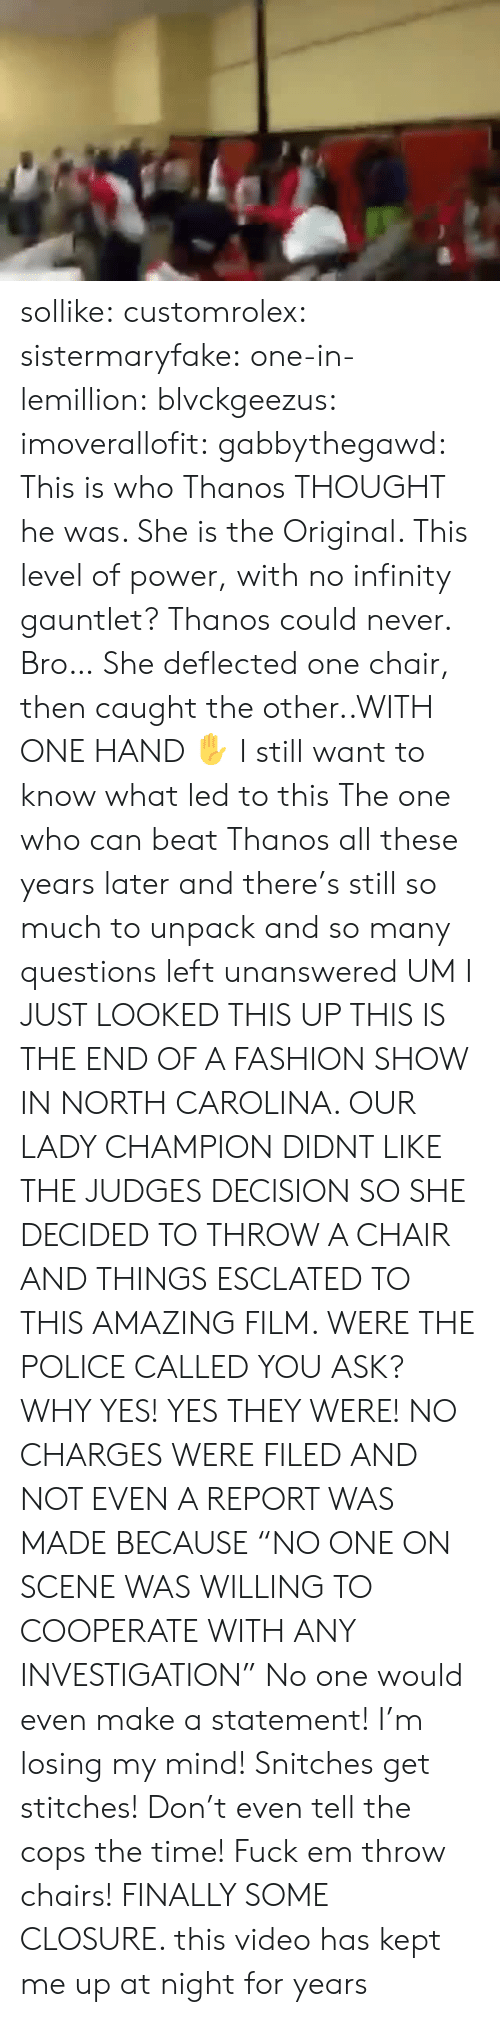 "gauntlet: sollike: customrolex:   sistermaryfake:  one-in-lemillion:  blvckgeezus:  imoverallofit:   gabbythegawd: This is who Thanos THOUGHT he was. She is the Original. This level of power, with no infinity gauntlet? Thanos could never.  Bro… She deflected one chair, then caught the other..WITH ONE HAND ✋   I still want to know what led to this    The one who can beat Thanos   all these years later and there's still so much to unpack and so many questions left unanswered   UM I JUST LOOKED THIS UP  THIS IS THE END OF A FASHION SHOW IN NORTH CAROLINA. OUR LADY CHAMPION DIDNT LIKE THE JUDGES DECISION SO SHE DECIDED TO THROW A CHAIR AND THINGS ESCLATED TO THIS AMAZING FILM.  WERE THE POLICE CALLED YOU ASK? WHY YES! YES THEY WERE!  NO CHARGES WERE FILED AND NOT EVEN A REPORT WAS MADE BECAUSE ""NO ONE ON SCENE WAS WILLING TO COOPERATE WITH ANY INVESTIGATION""  No one would even make a statement! I'm losing my mind! Snitches get stitches! Don't even tell the cops the time! Fuck em throw chairs!   FINALLY SOME CLOSURE. this video has kept me up at night for years"